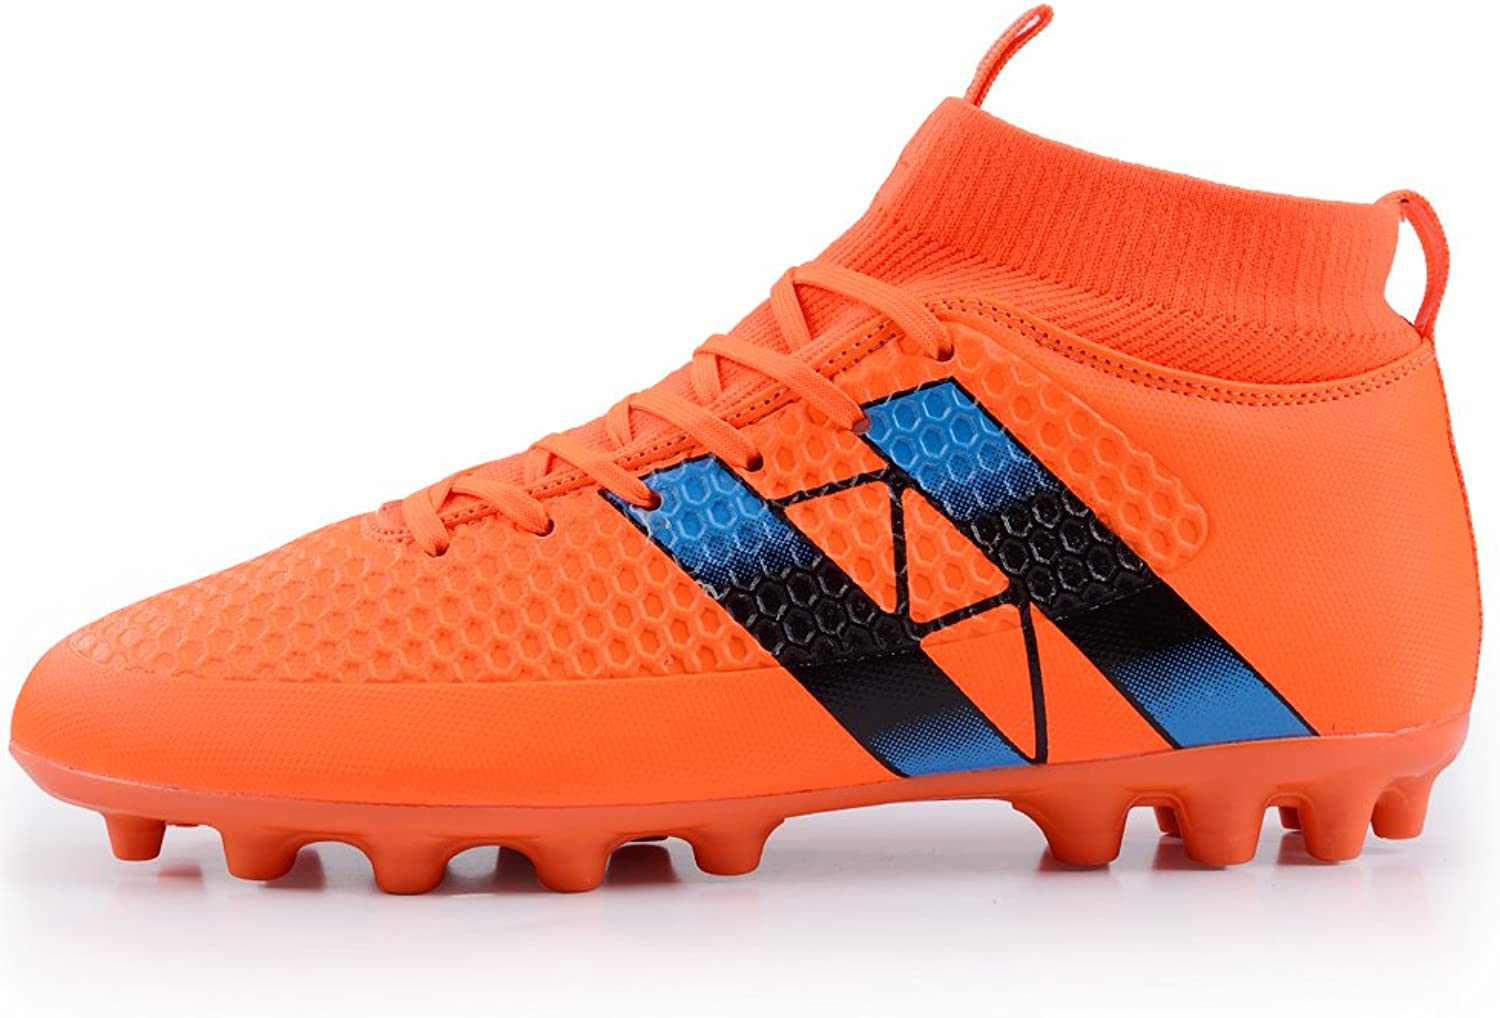 XiXiHao Football shoes Sneakers Indoor Turf Super Ankle Soccer Boots